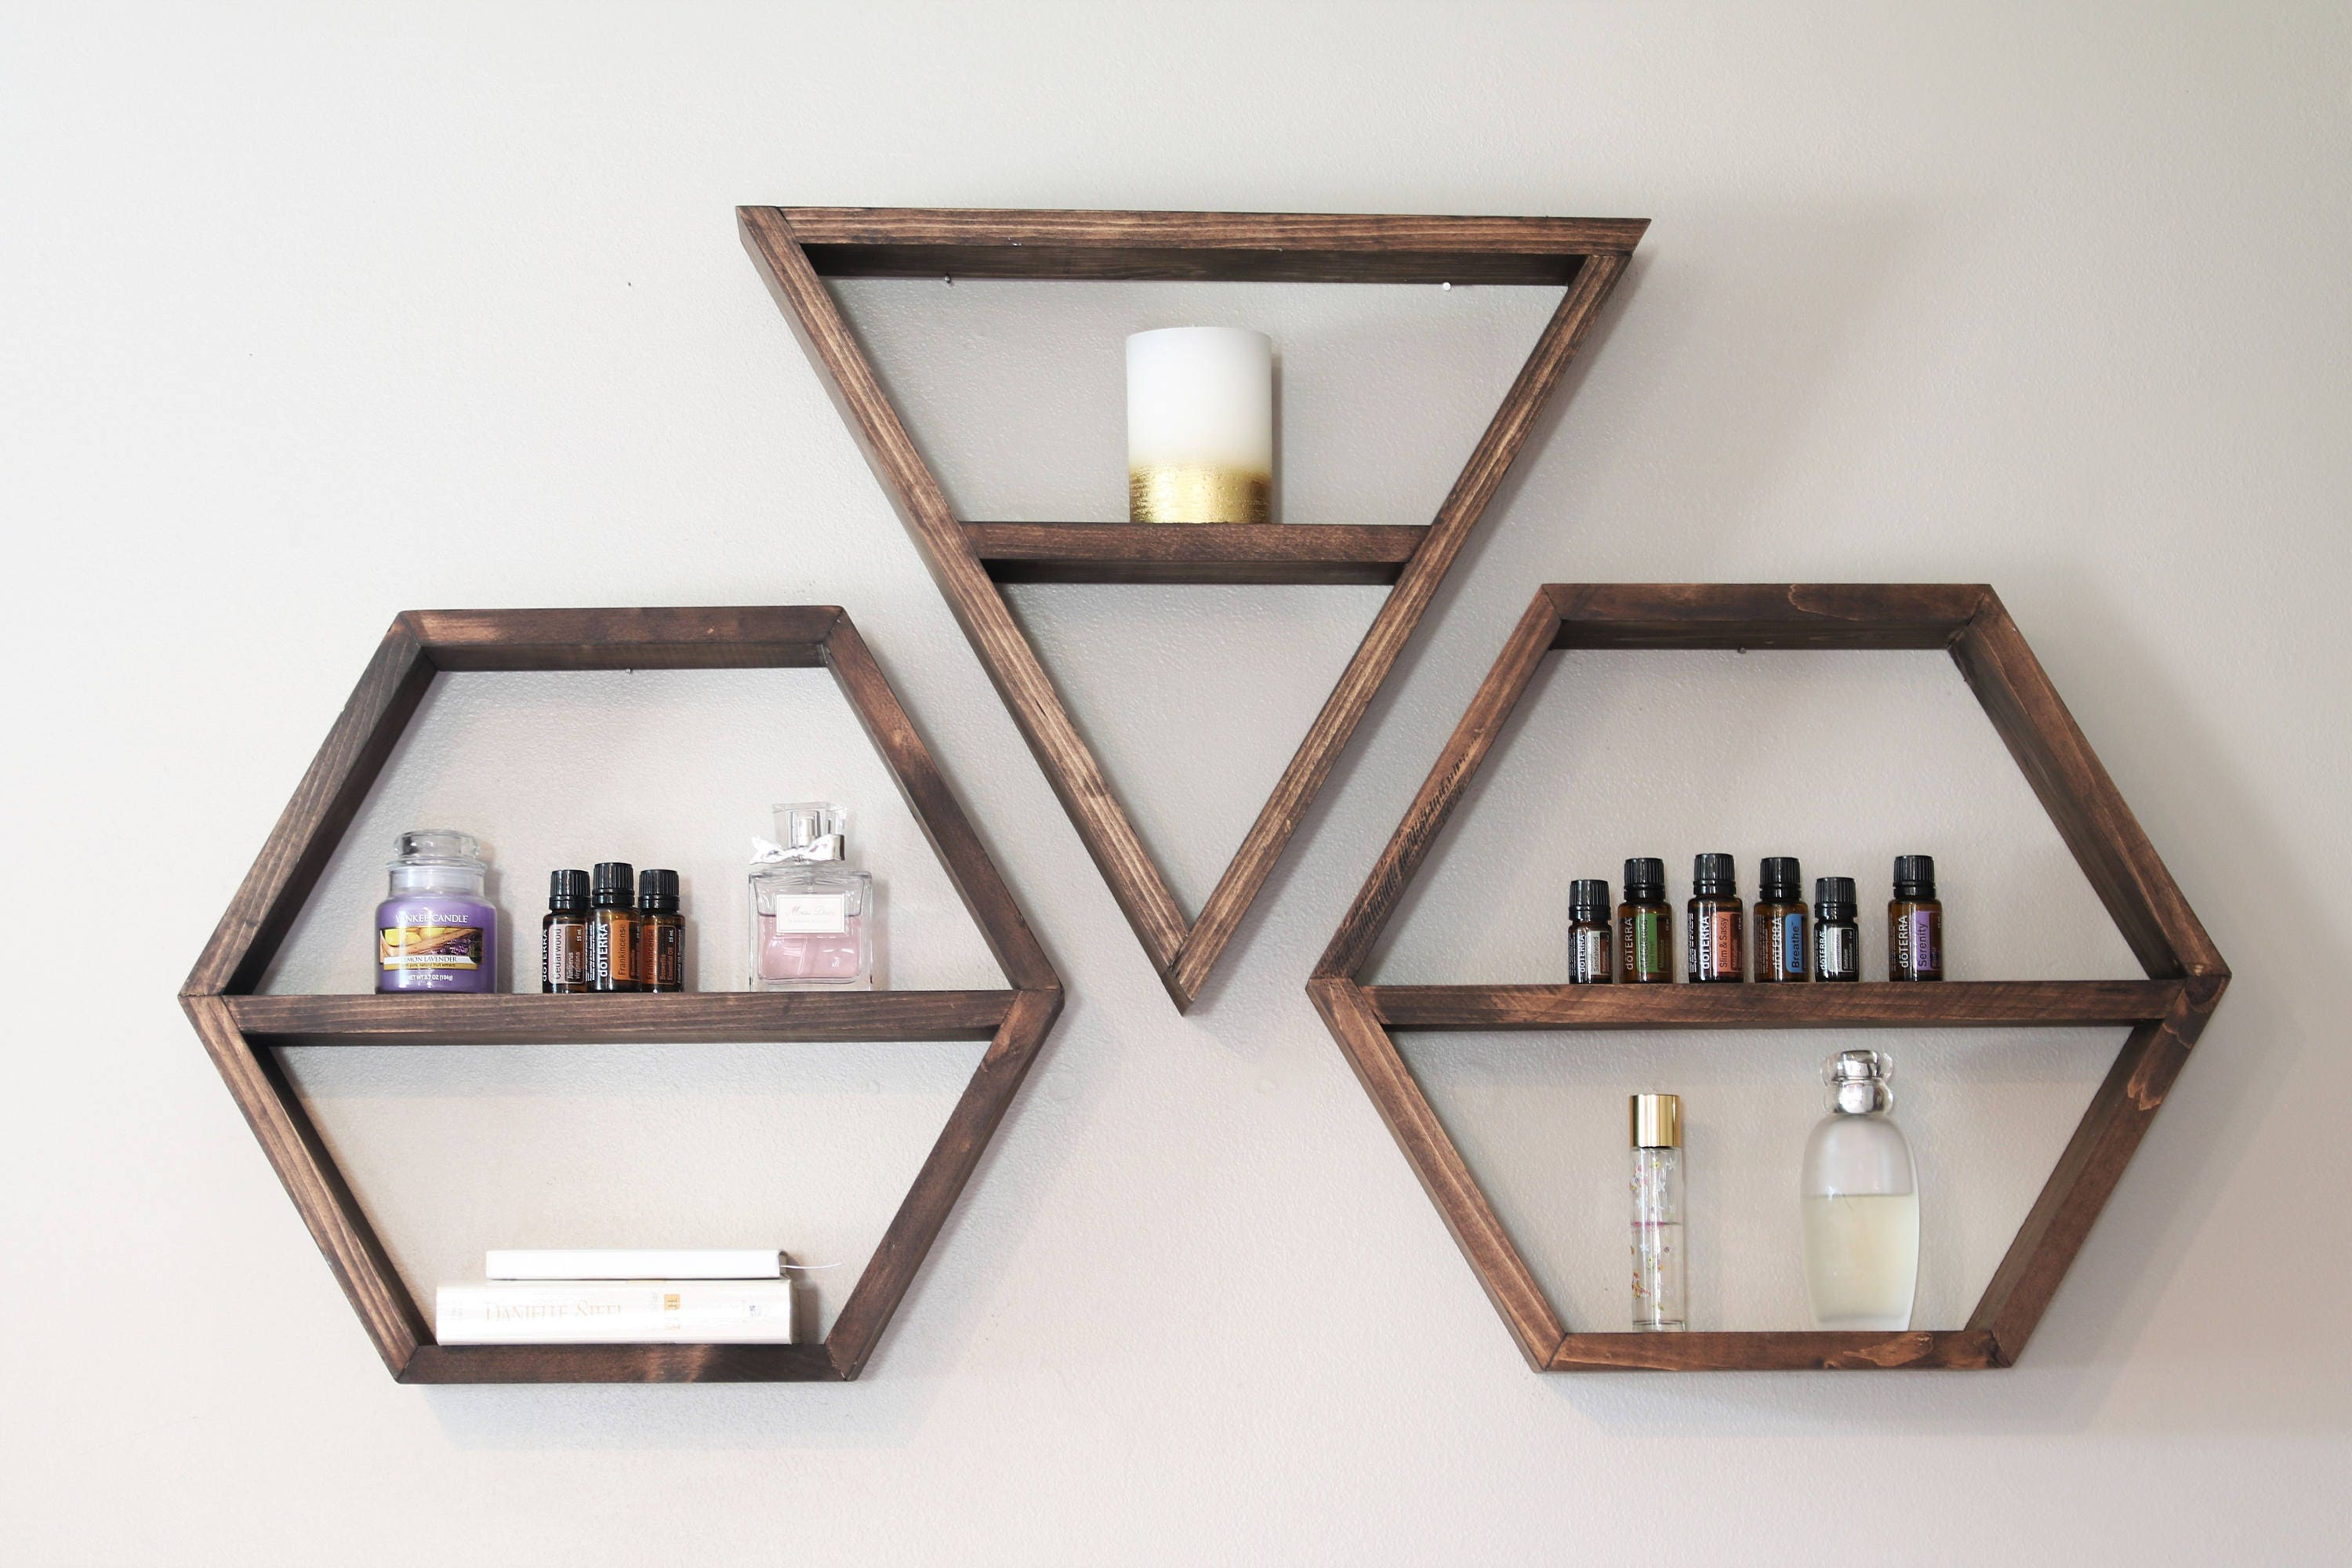 Honeycomb shelf honeycomb shelves hex shelves hexagon geometric shelf triangle shelf hexagon shelf shelves shelving bohemian shelves amipublicfo Gallery